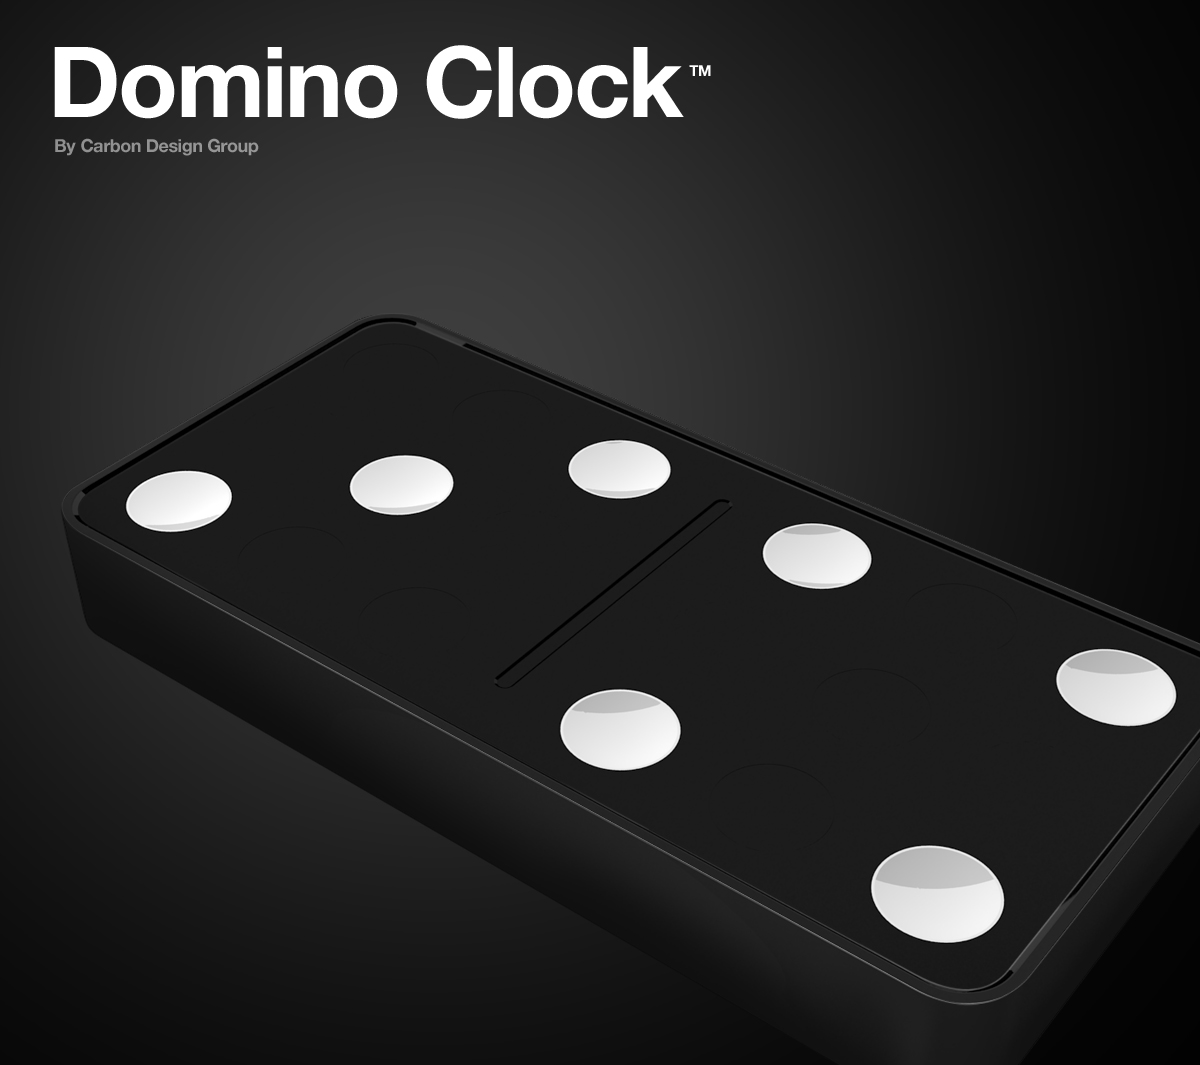 domino introduction Domino's pizza and tom monaghan - introduction domino's pizza was started with the idea of creating a fast, reliable delivery system in 1960 by tom monaghan it was.